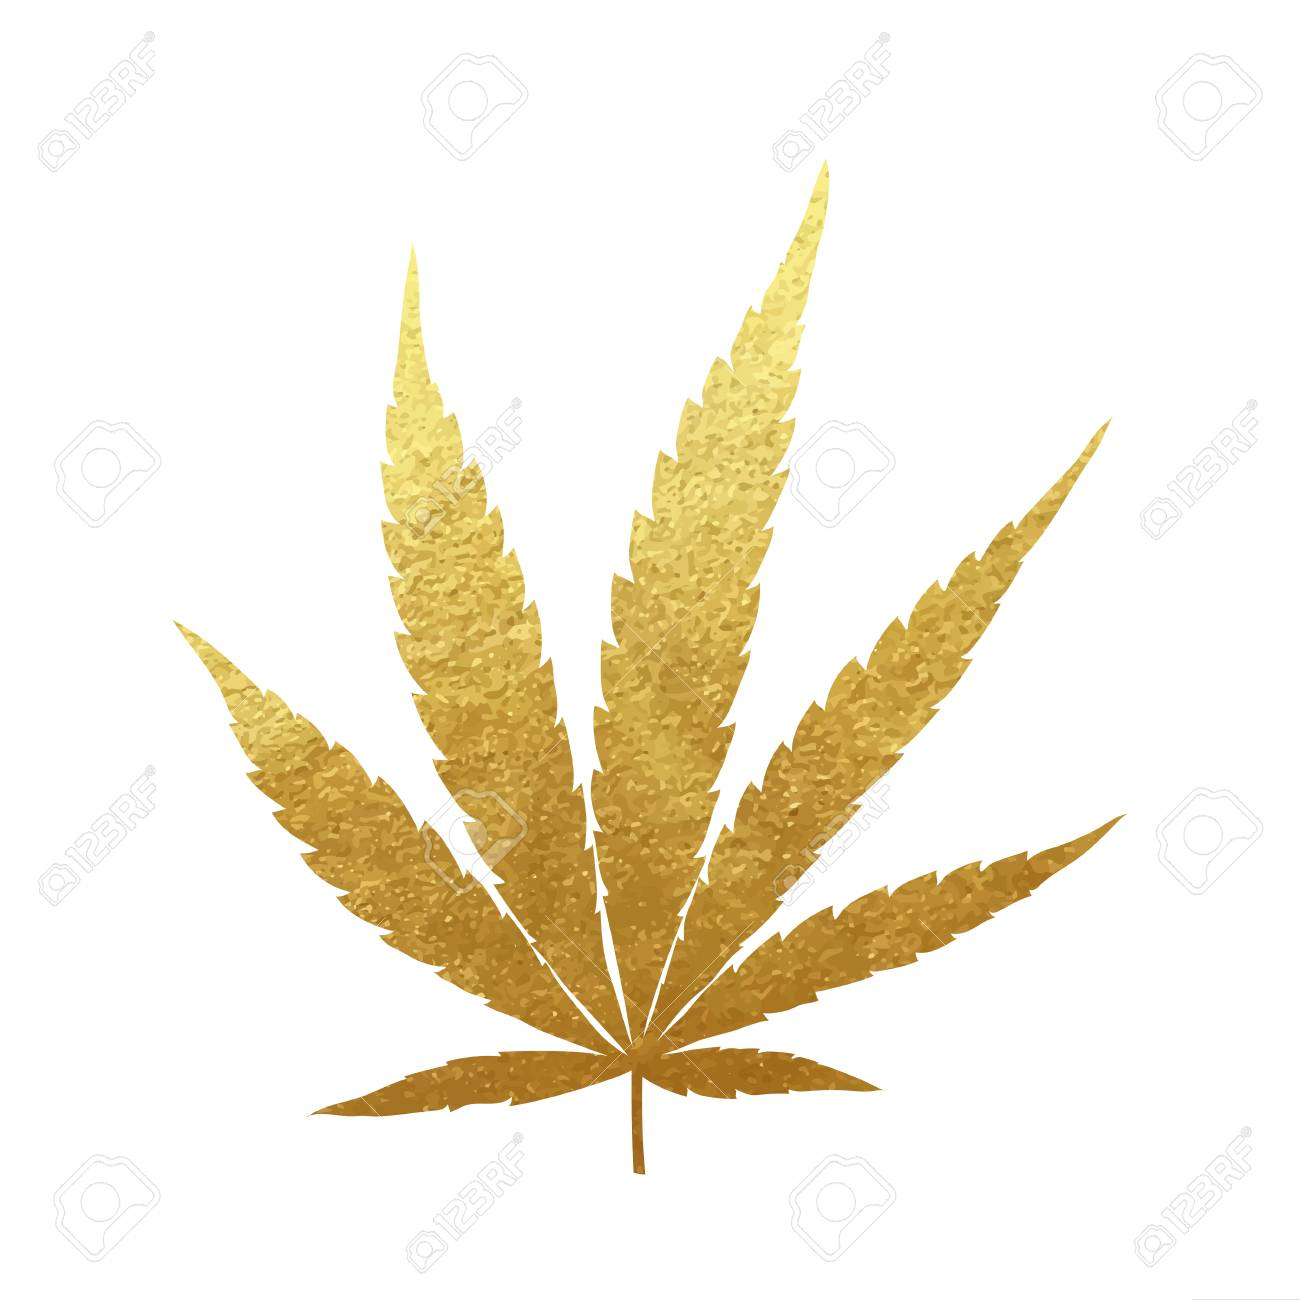 Gold Cannabis Leaf Vector Metallic Golden Paint Foil Silhuette Royalty Free Cliparts Vectors And Stock Illustration Image 122579398